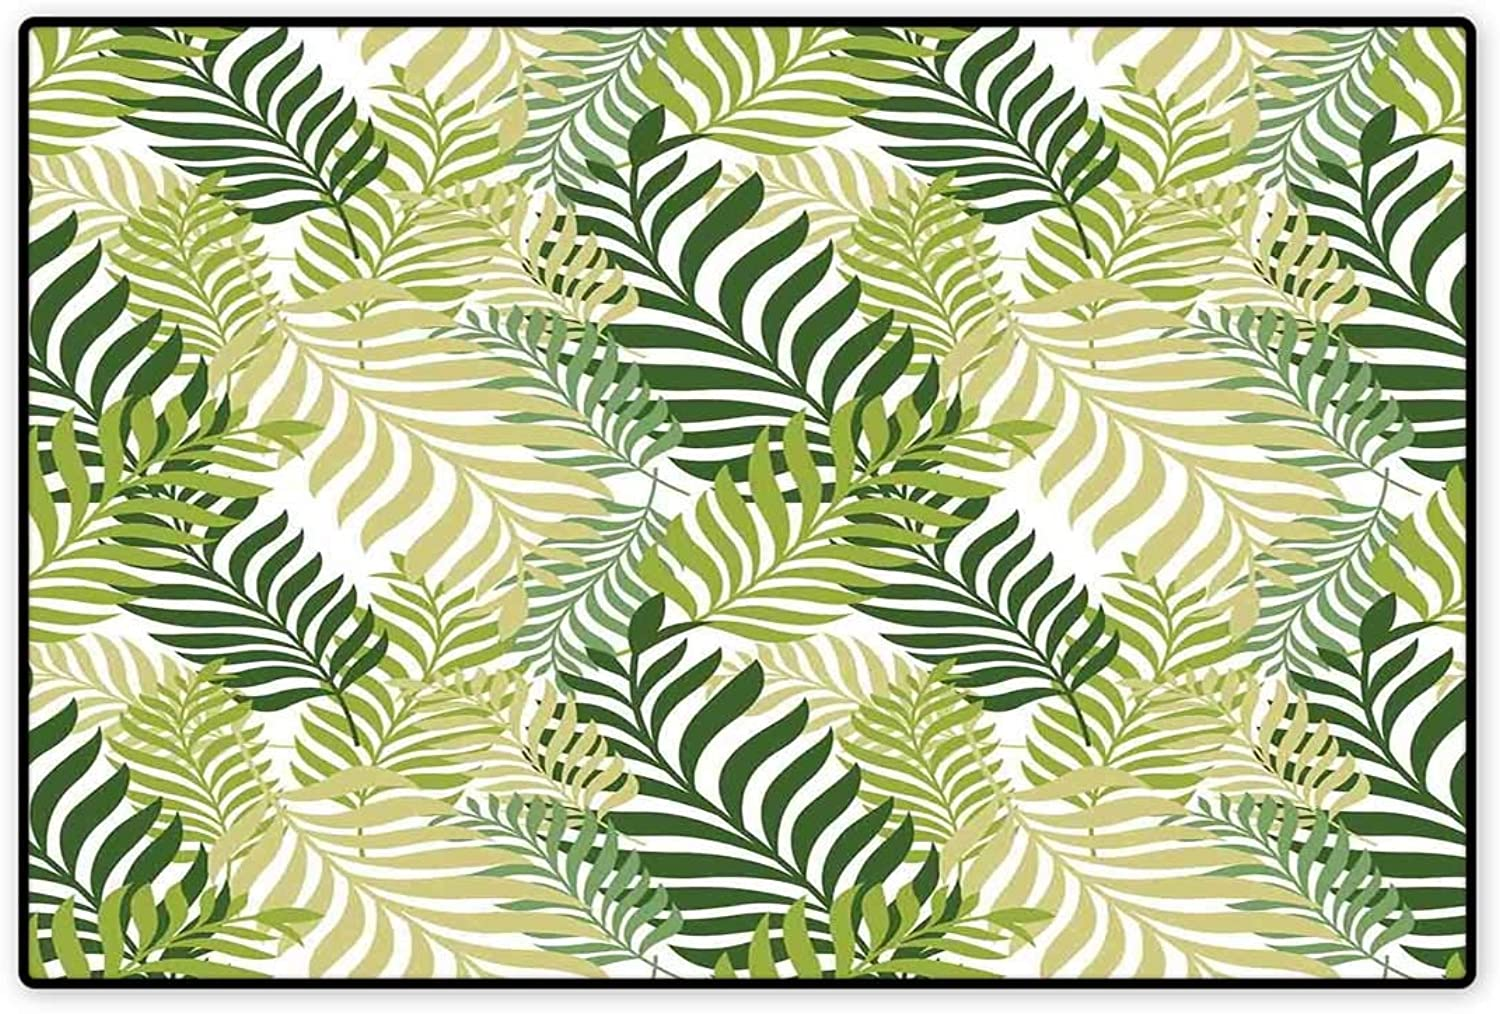 Leaves Door Mat Indoors Tropical Exotic Palm Tree Leaves Natural Botanical Spring Summer Contemporary Graphic Floor Mat Pattern 32 x48  Green Ecru